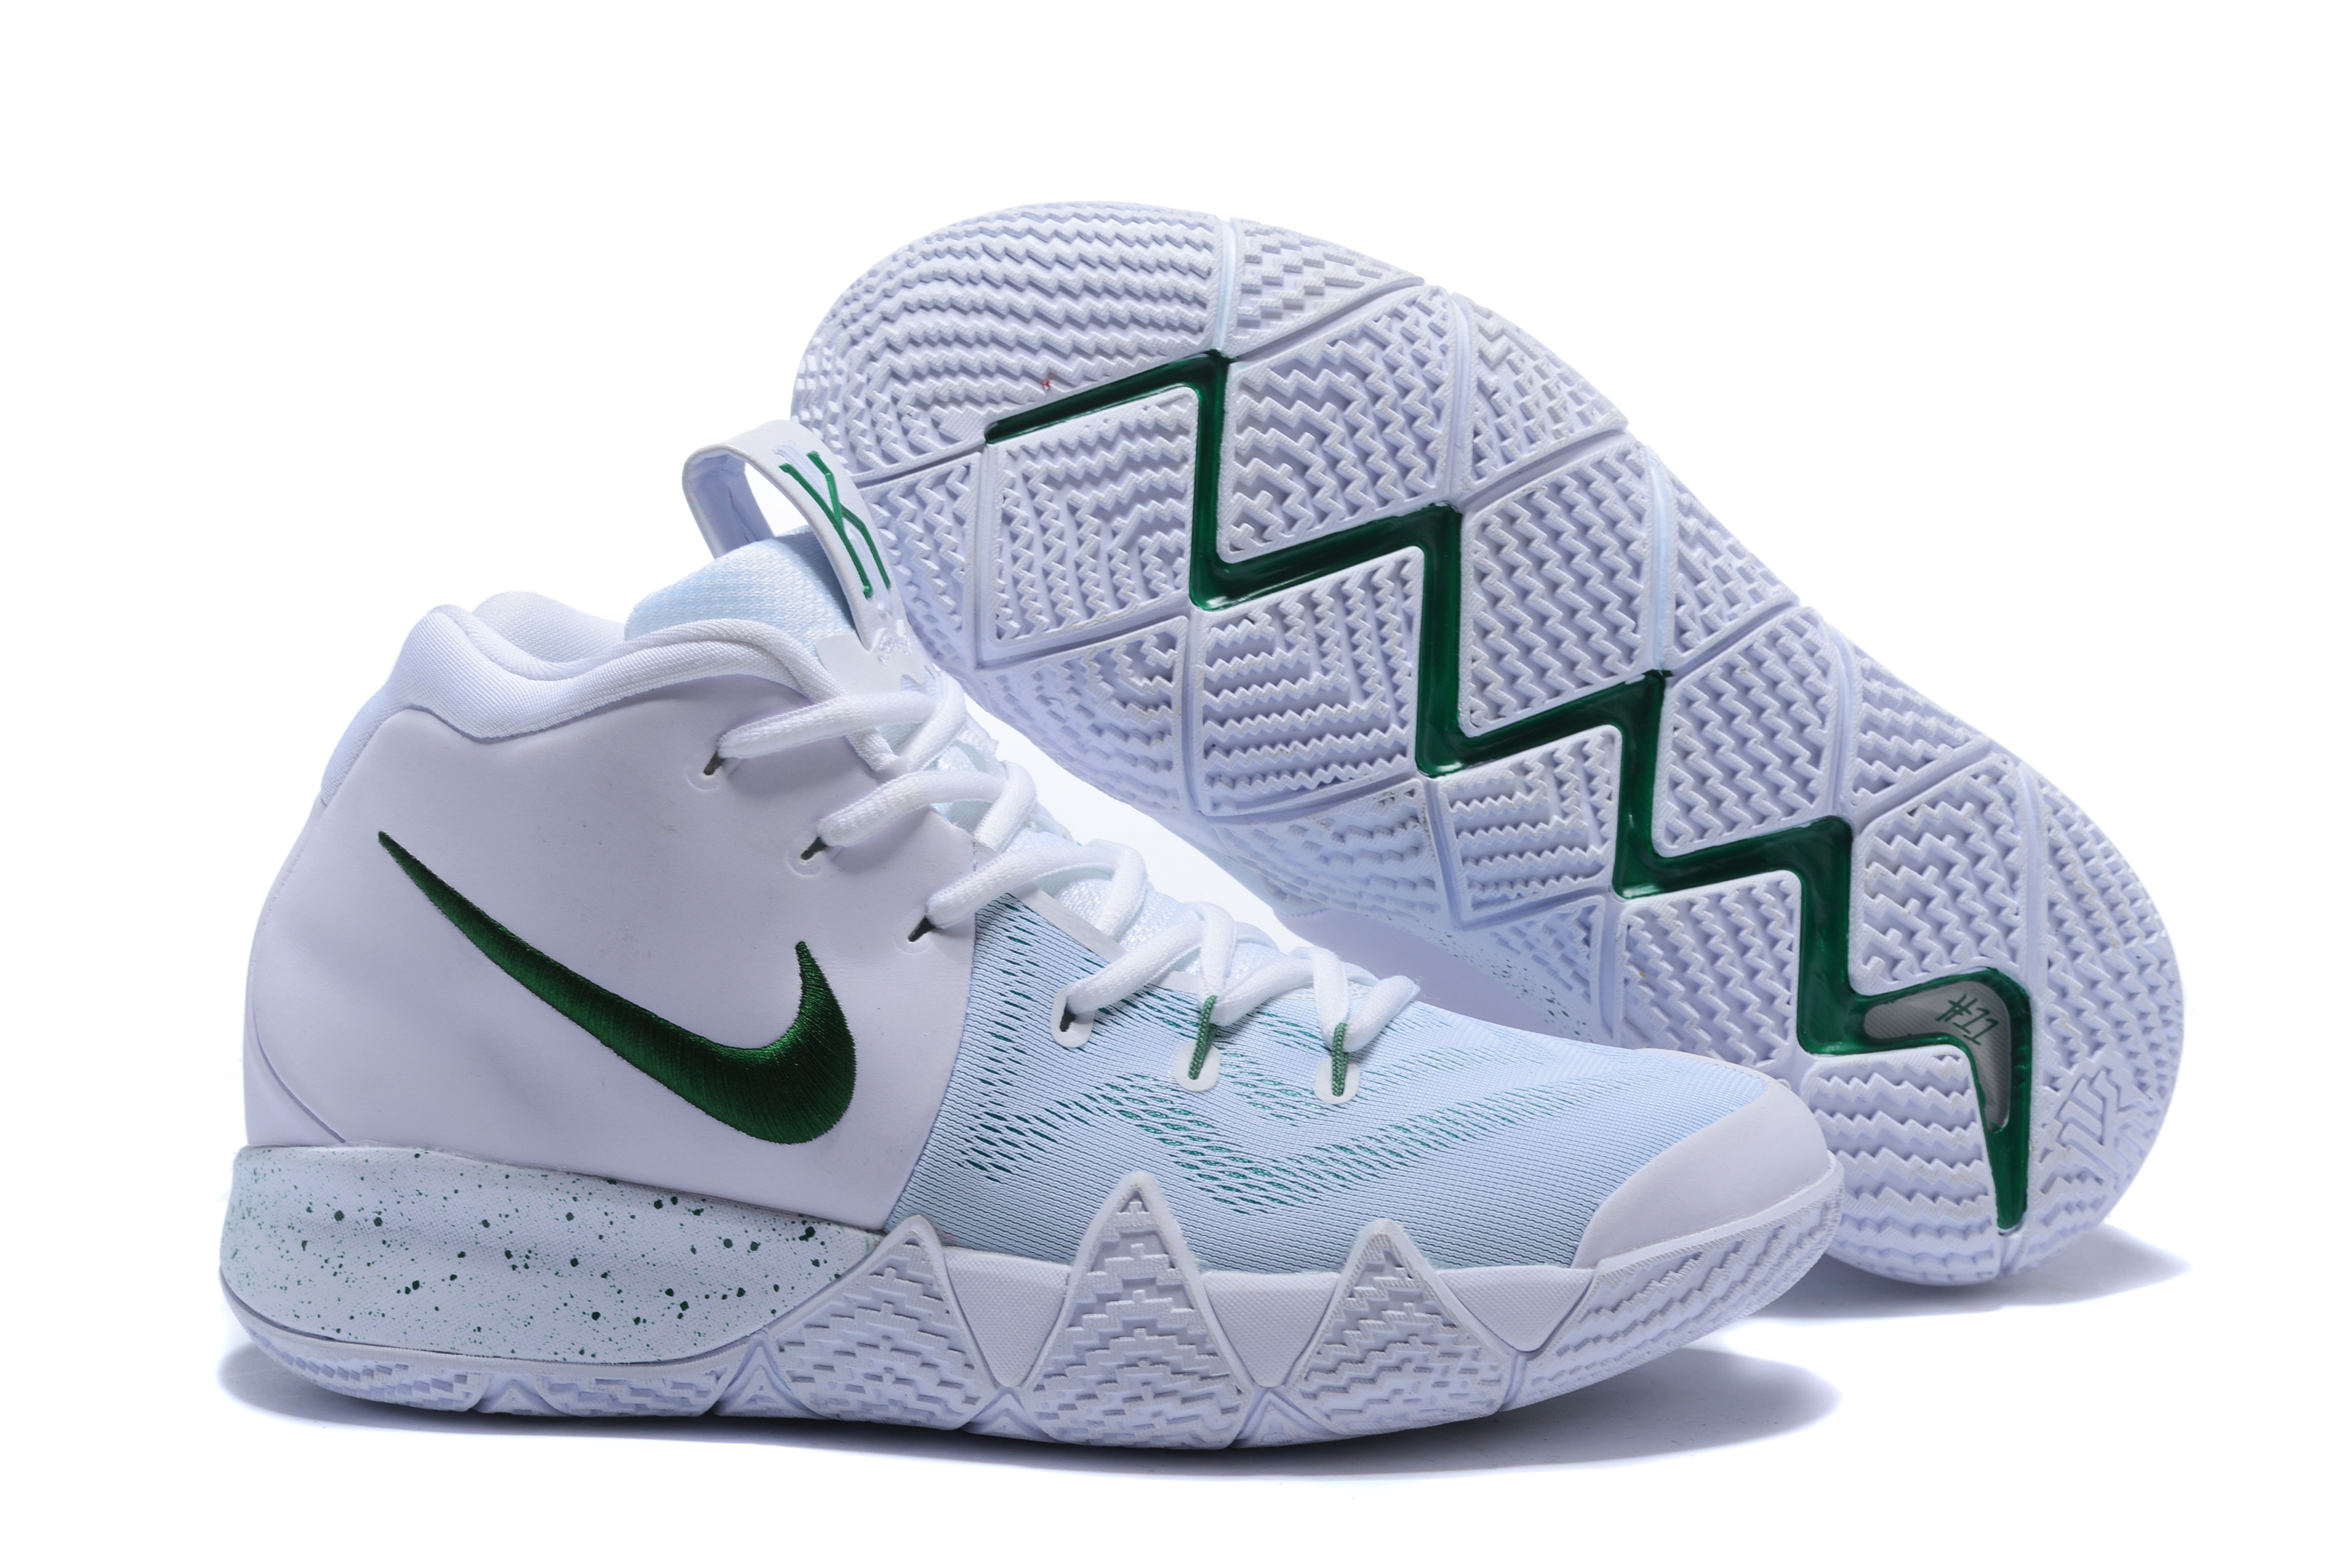 2018 Nike Kyrie 4 White Shoes